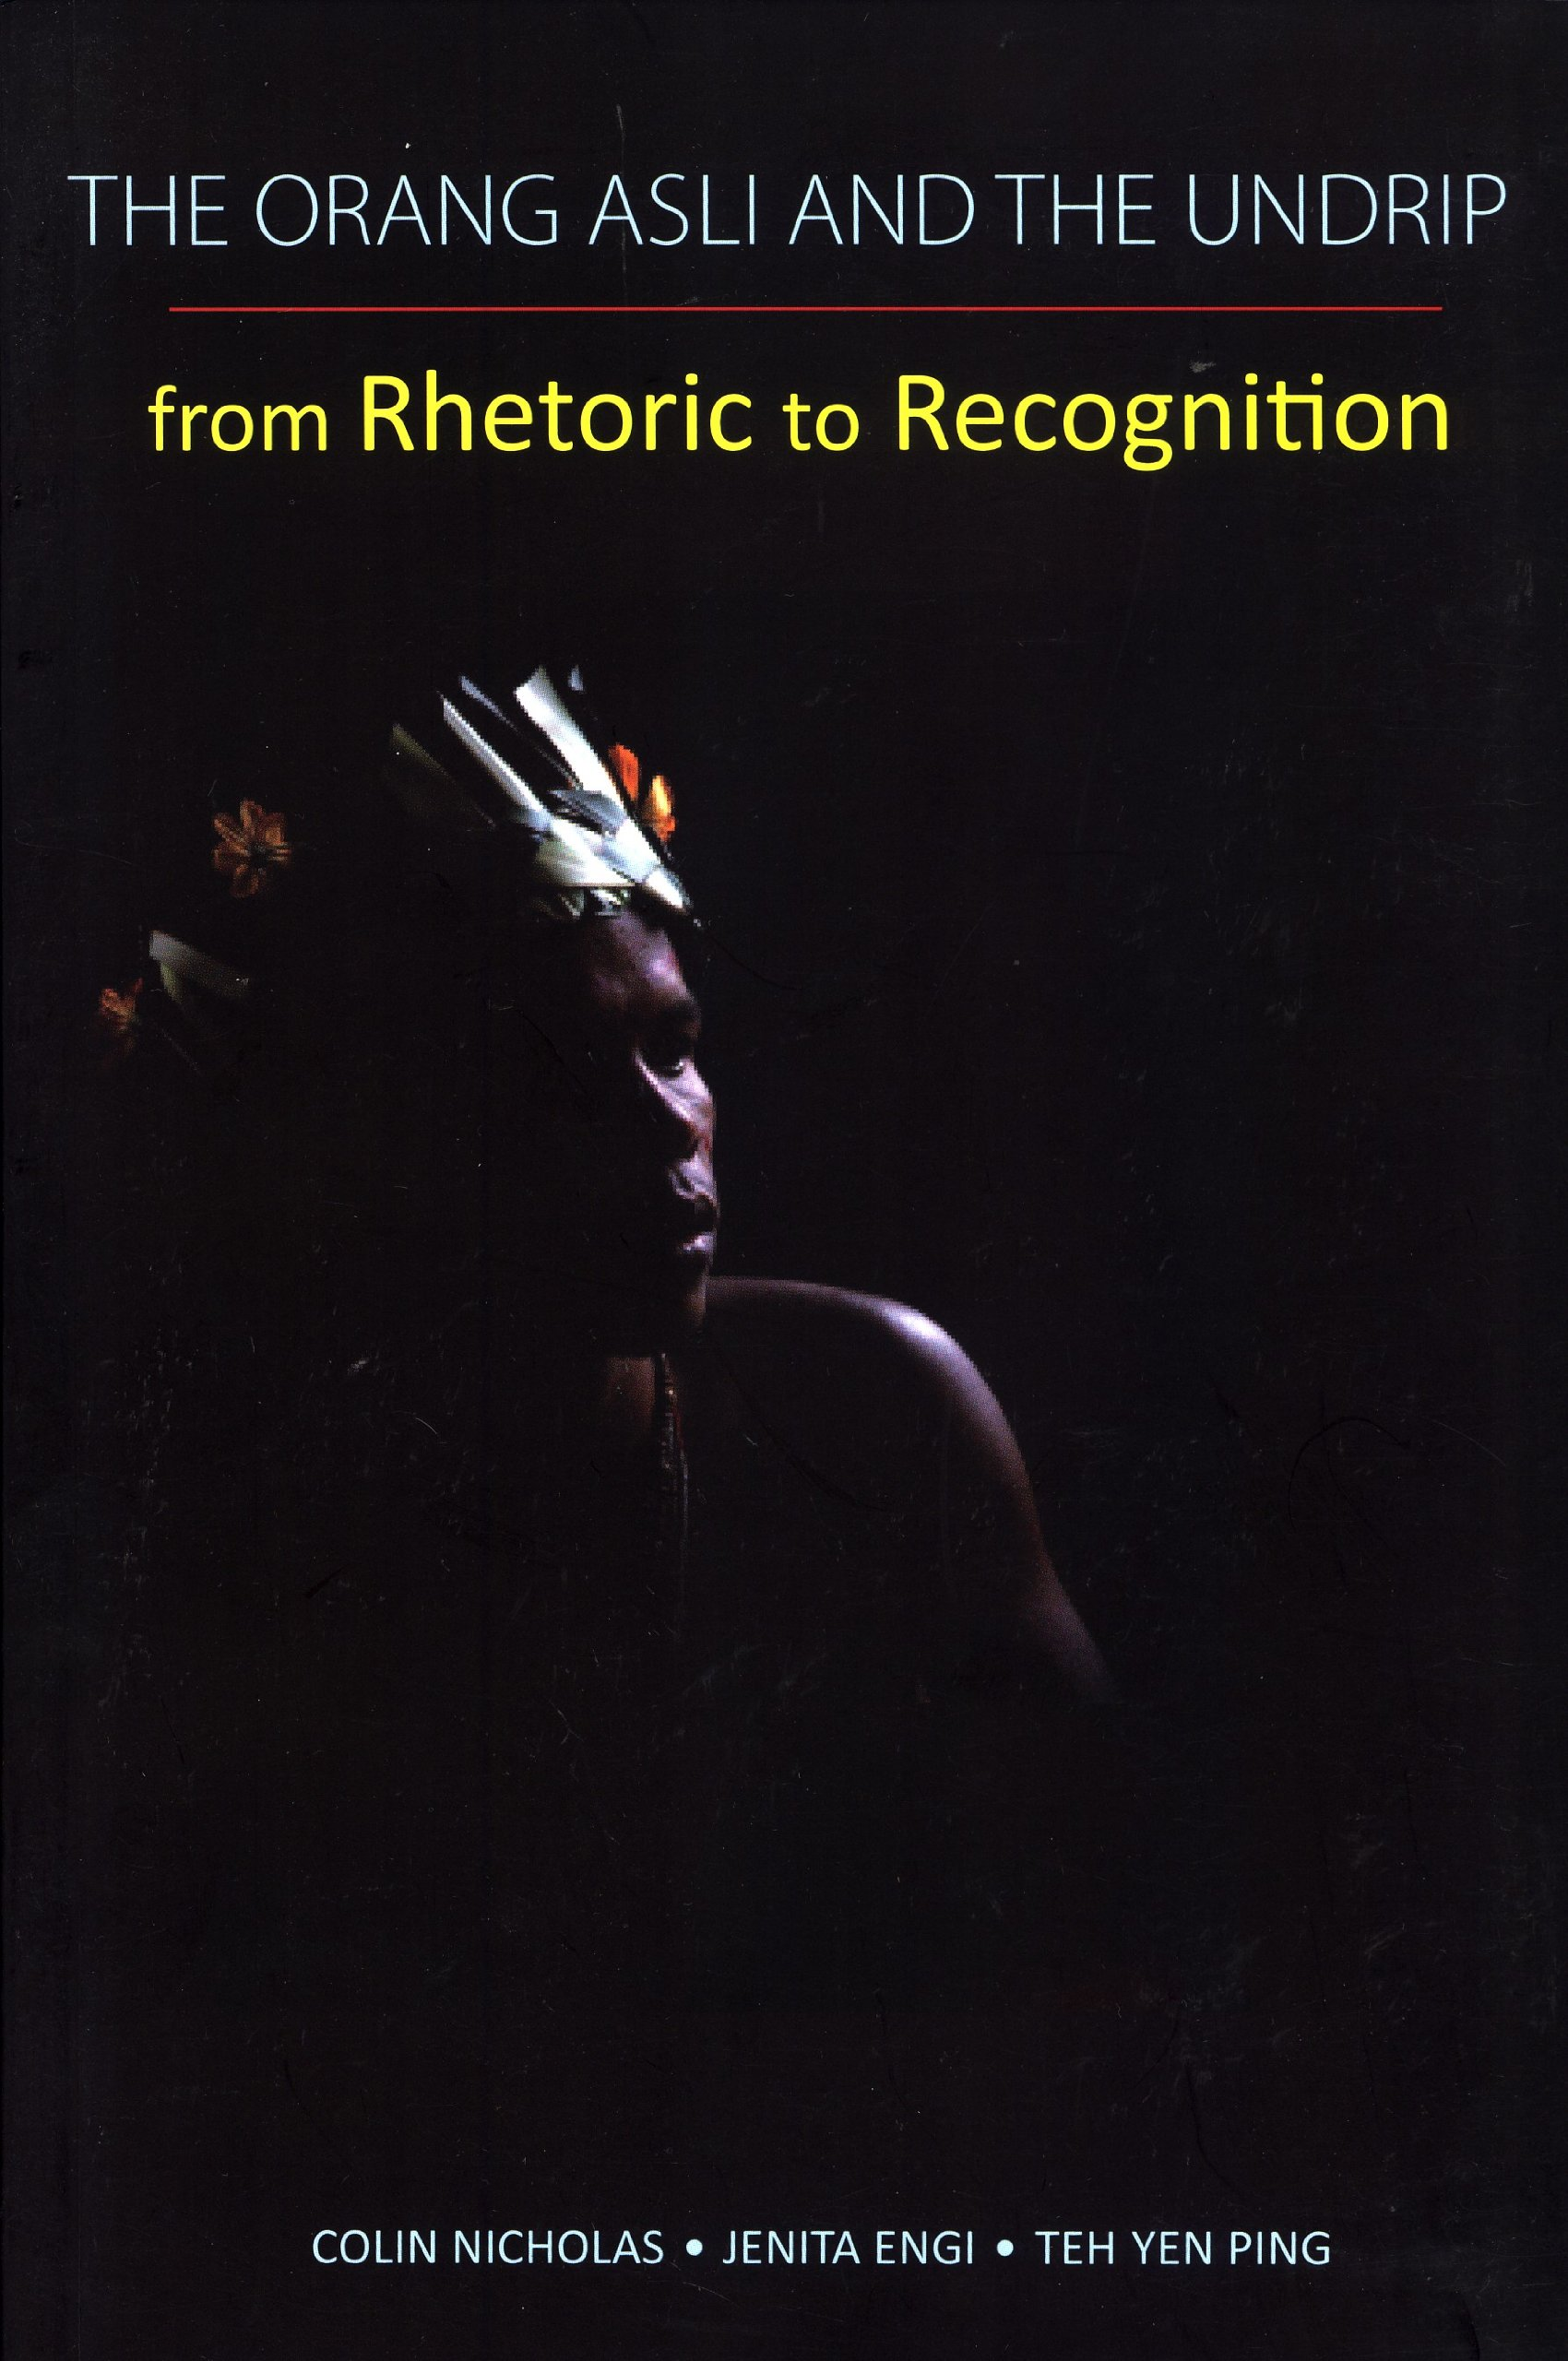 The Orang Asli And The Undrip From Rhetoric To Recognition C Engi J Ping T Y Nicholas  Amazon Com Books